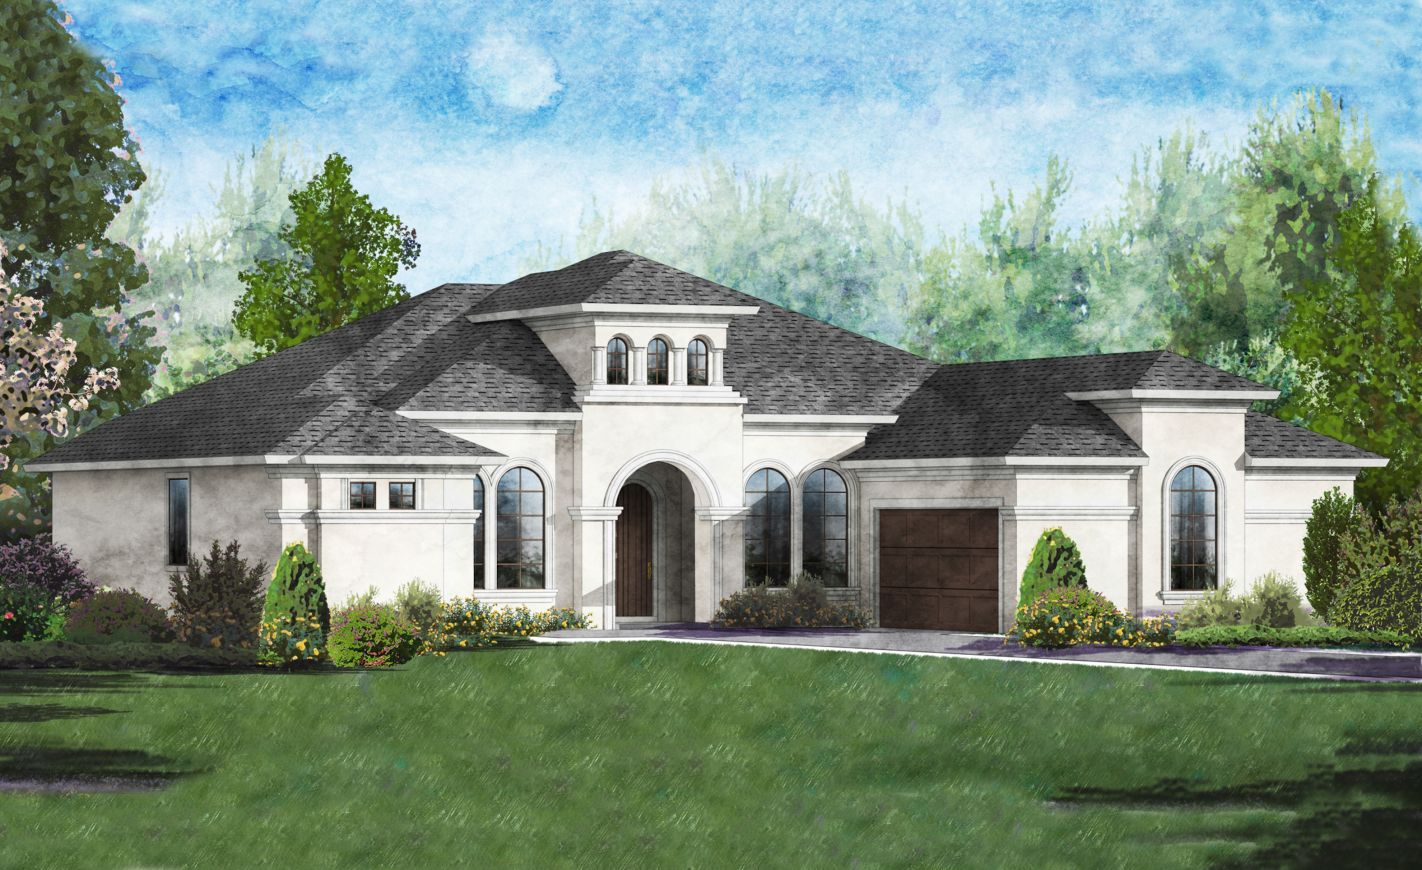 New Homes for Sale Ormond Beach FL - The Camden at Plantation Bay